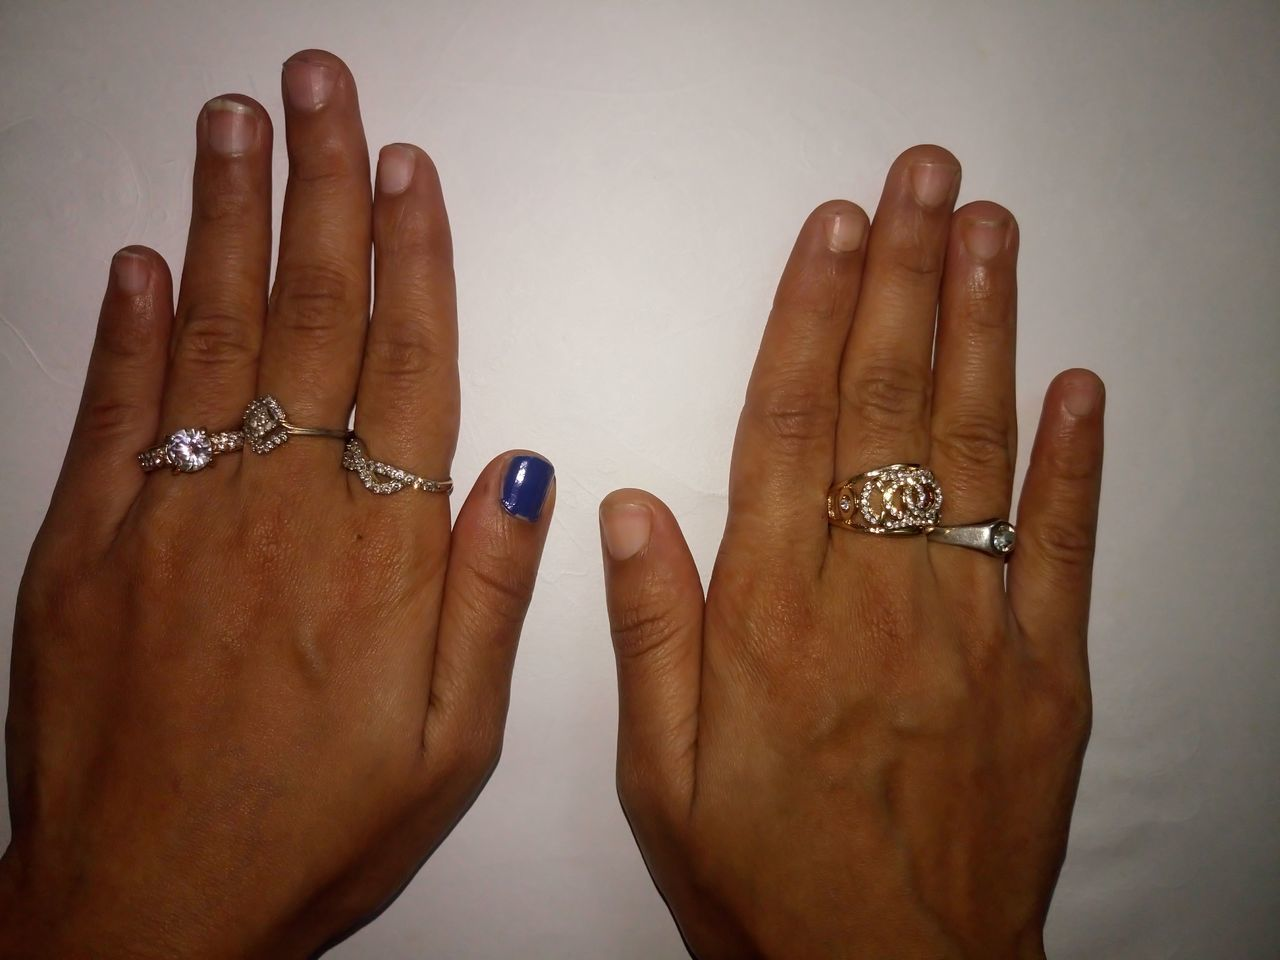 Close-Up Of Hands Wearing Rings